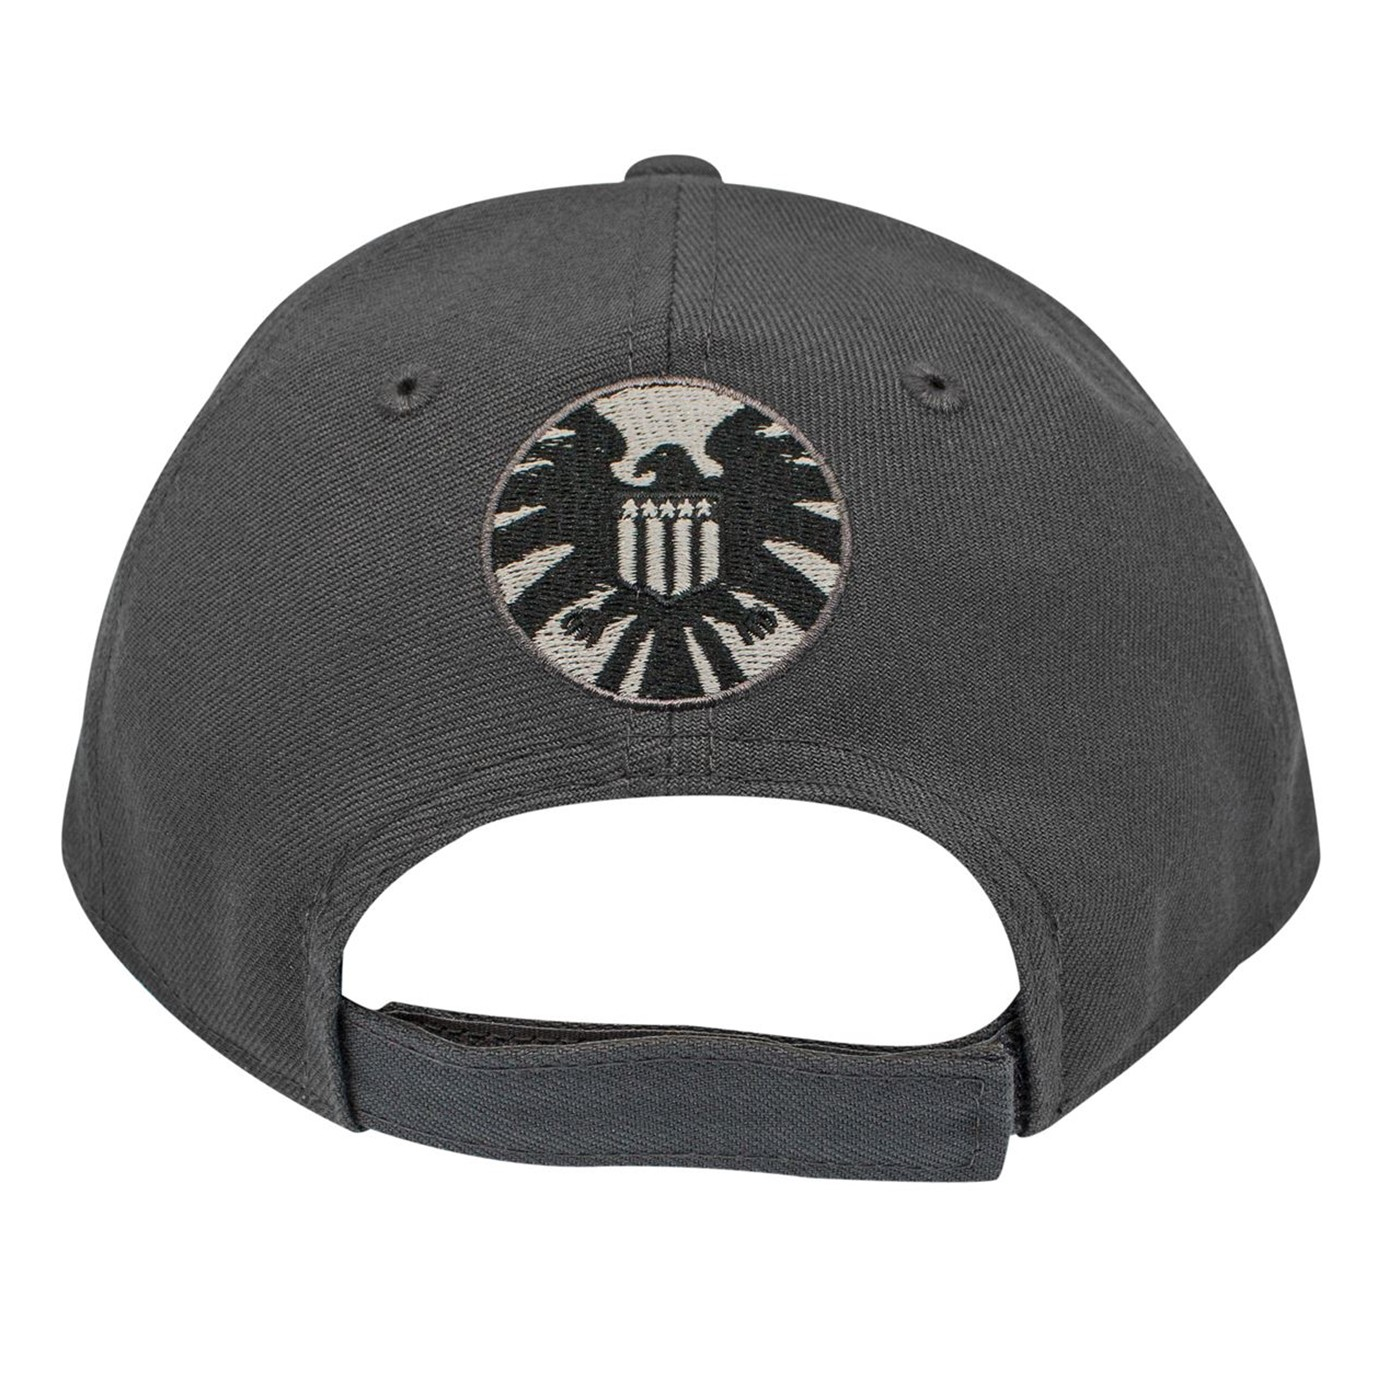 SHIELD Graphite New Era 9Forty Adjustable Hat